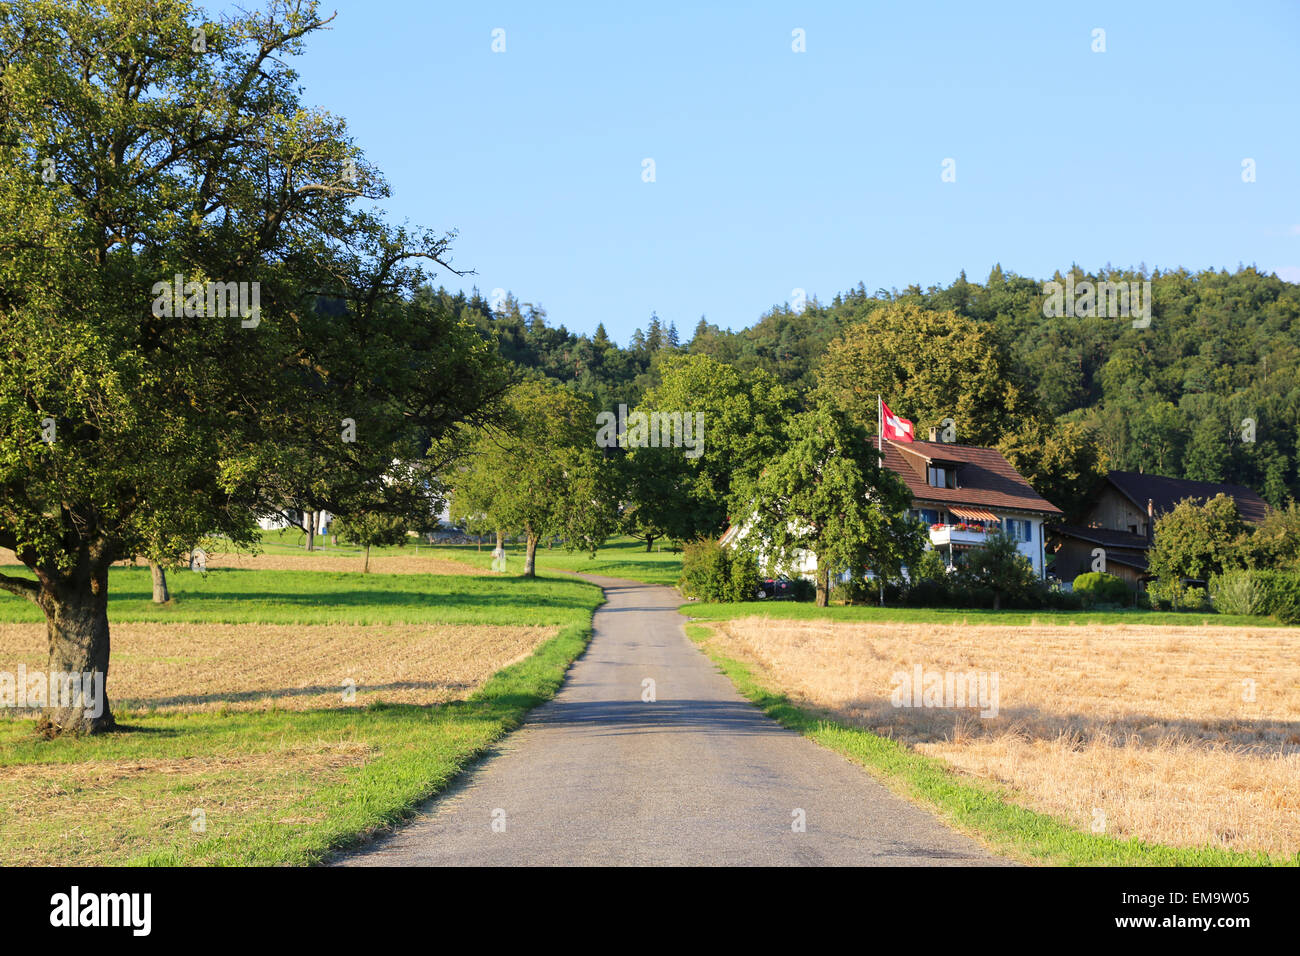 Road leading to a Swiss farm house Stock Photo